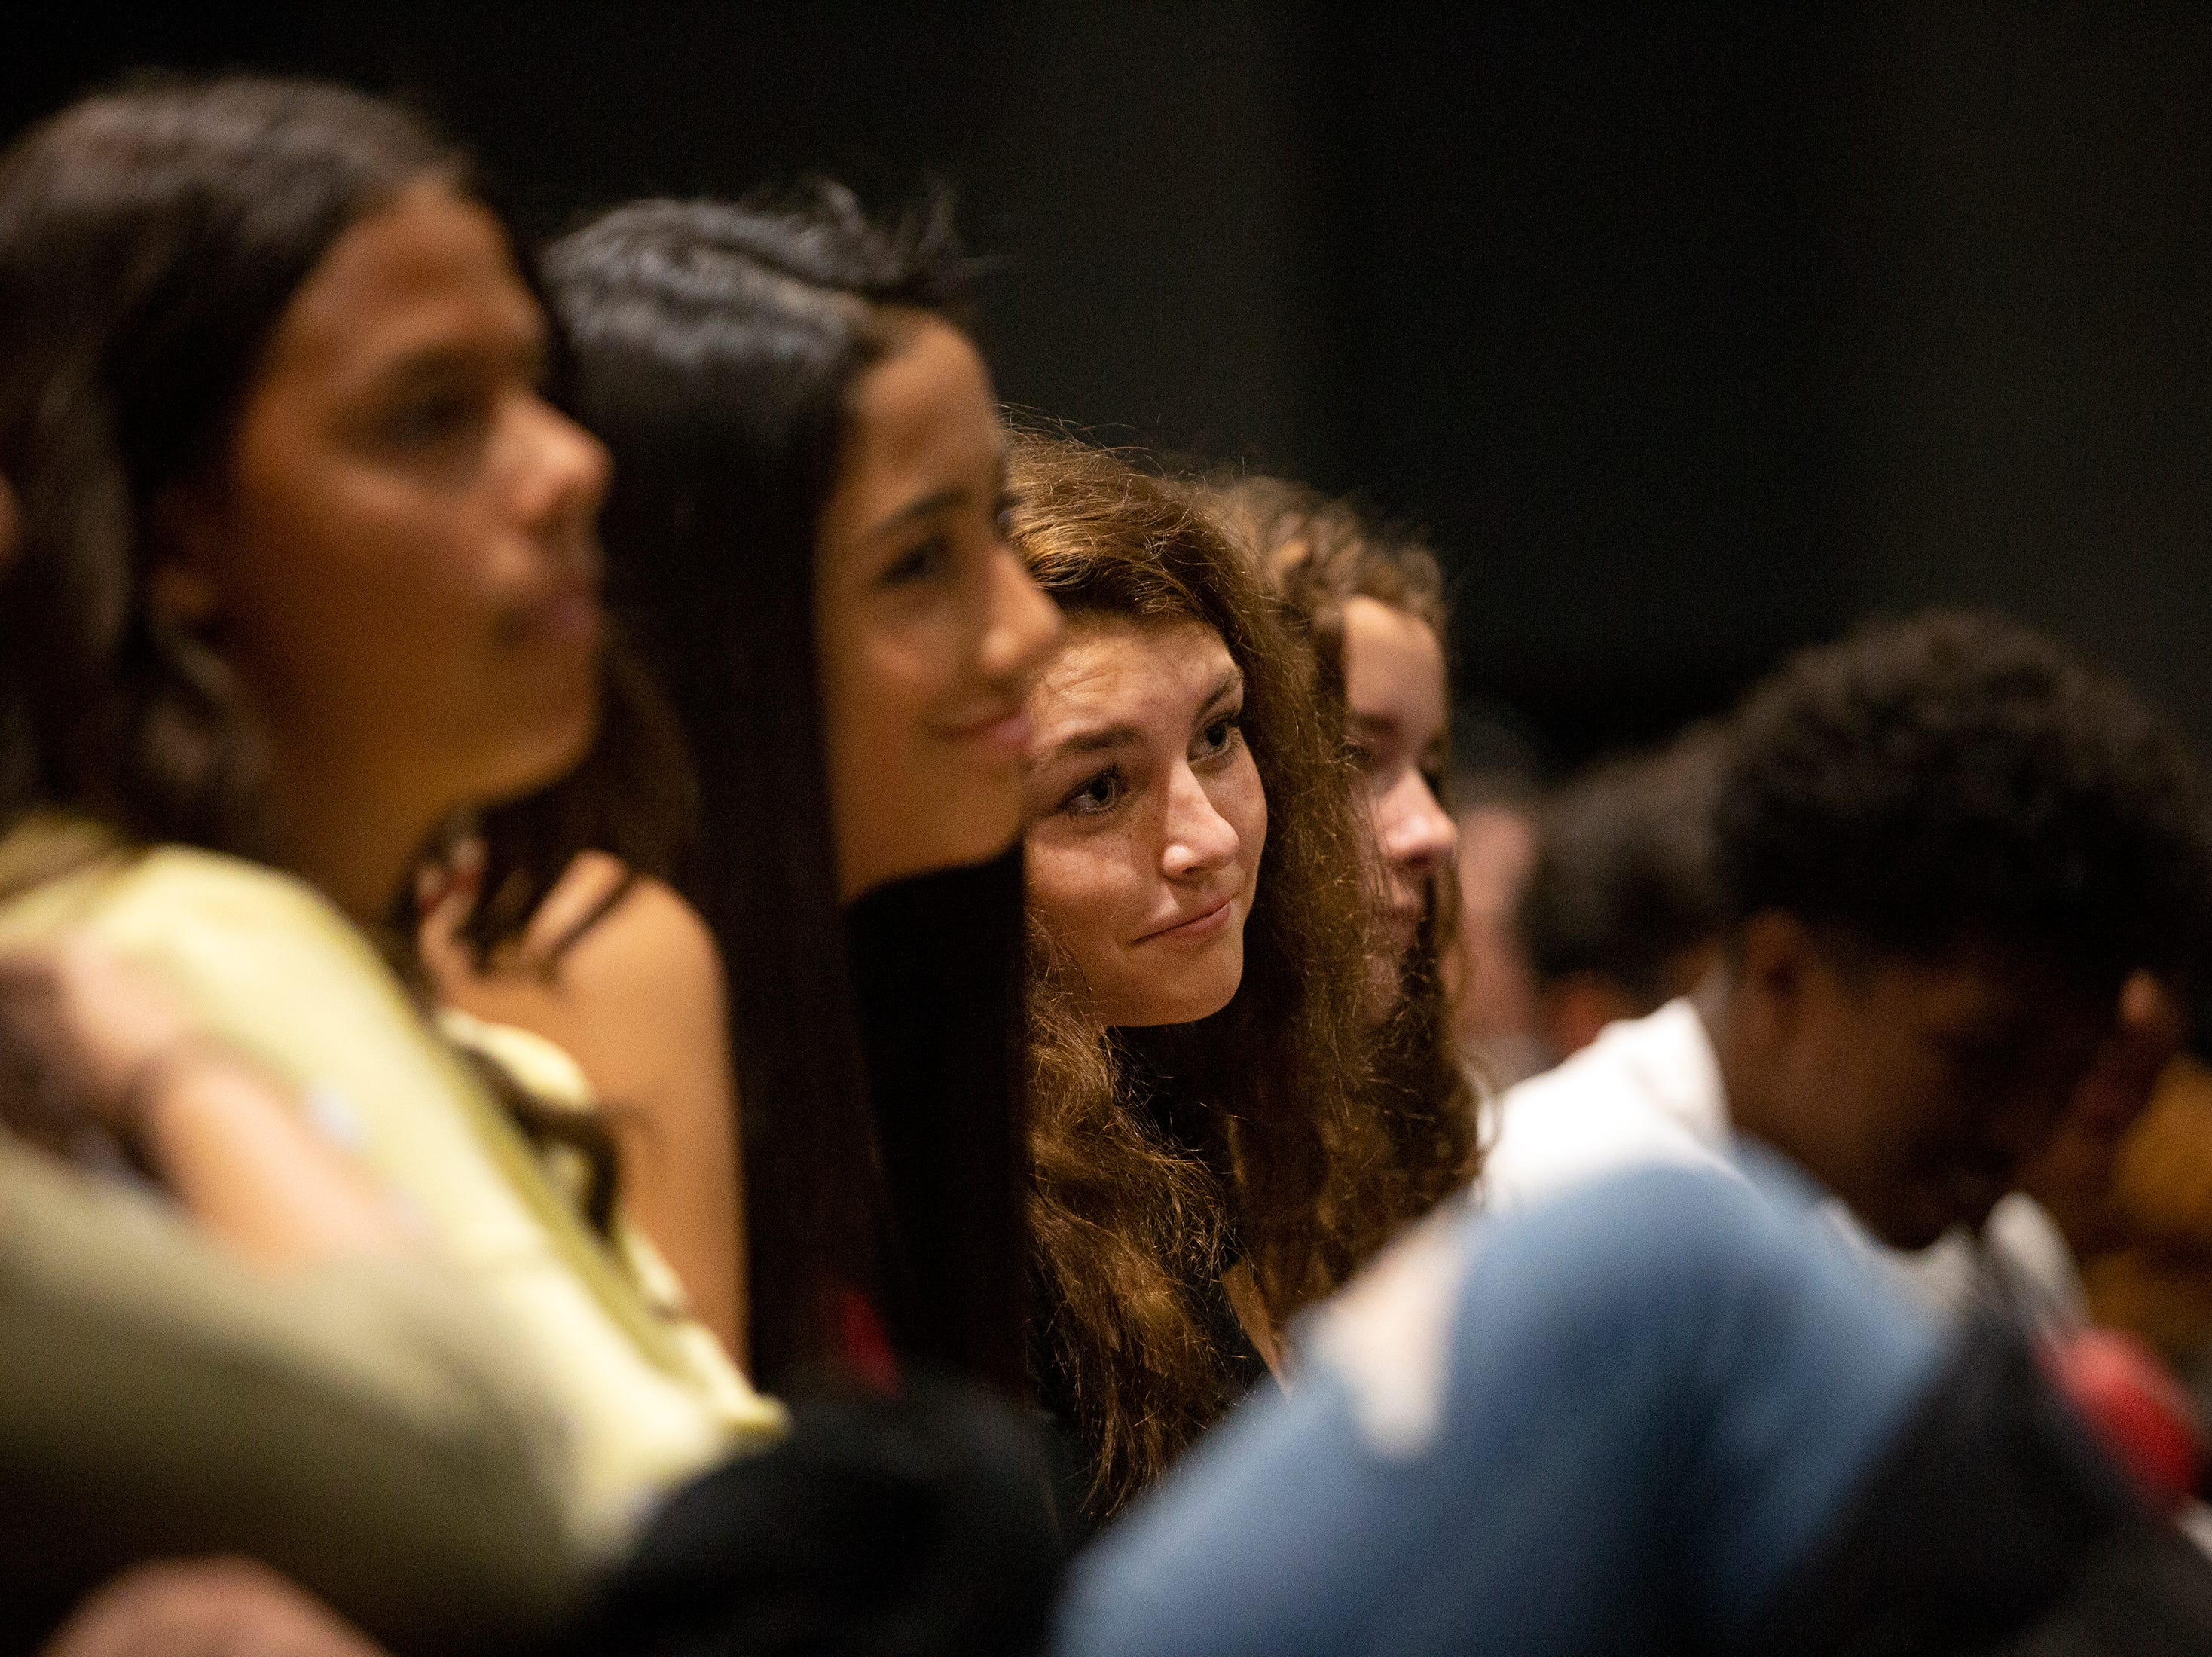 Freshman and sophomore students from Bonita High School watch the Florida Reparatory Theater's production of Romeo and Juliet, Thursday, Feb. 28, 2019, at Bonita High's black box theater.